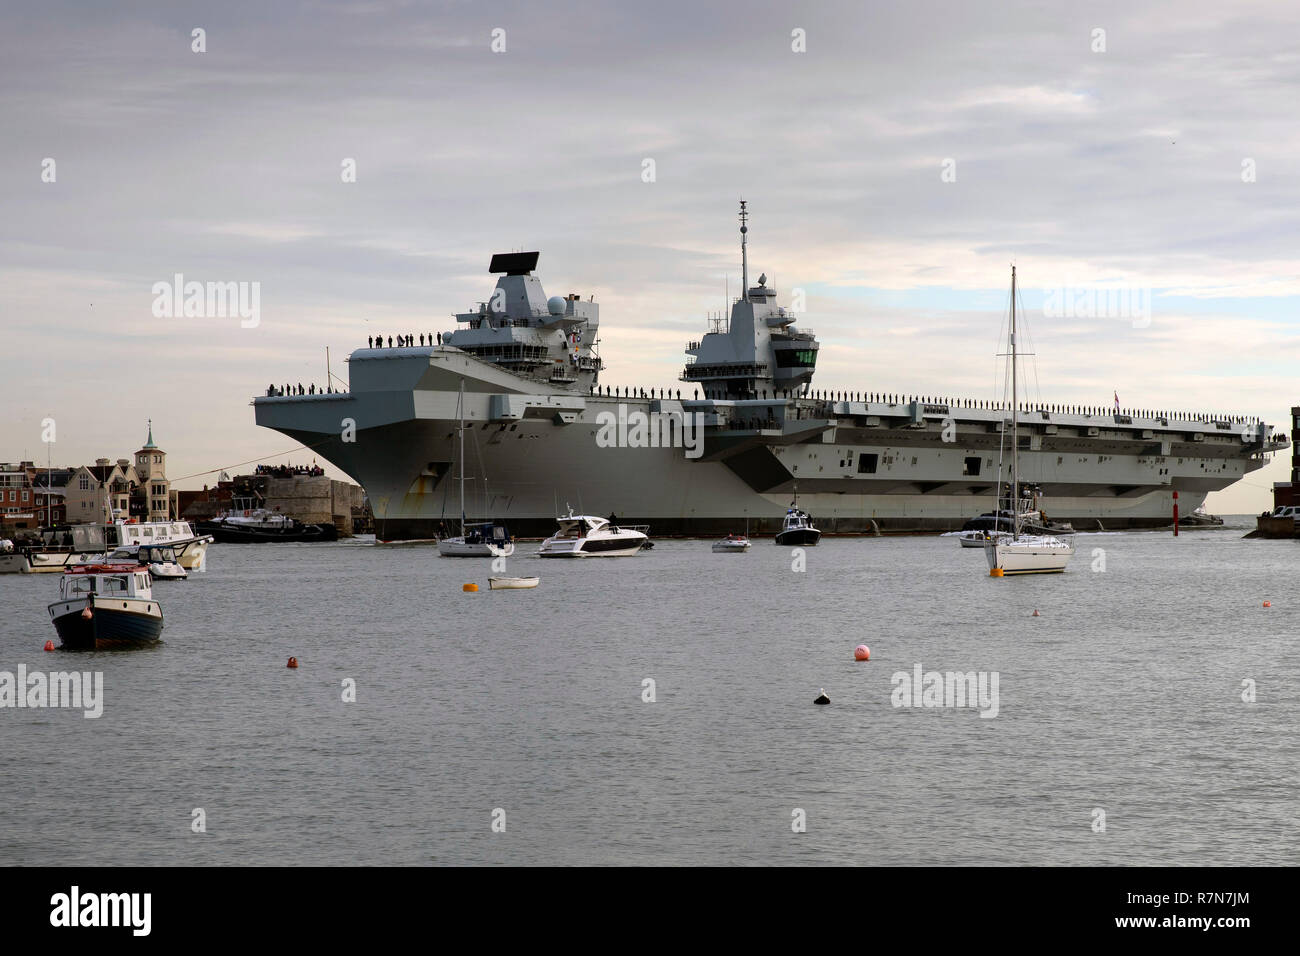 Royal Navy flagship HMS Queen Elizabeth arriving at her home port of Portsmouth on 10 December 2018. The Round Tower is to the left of the image - Stock Image